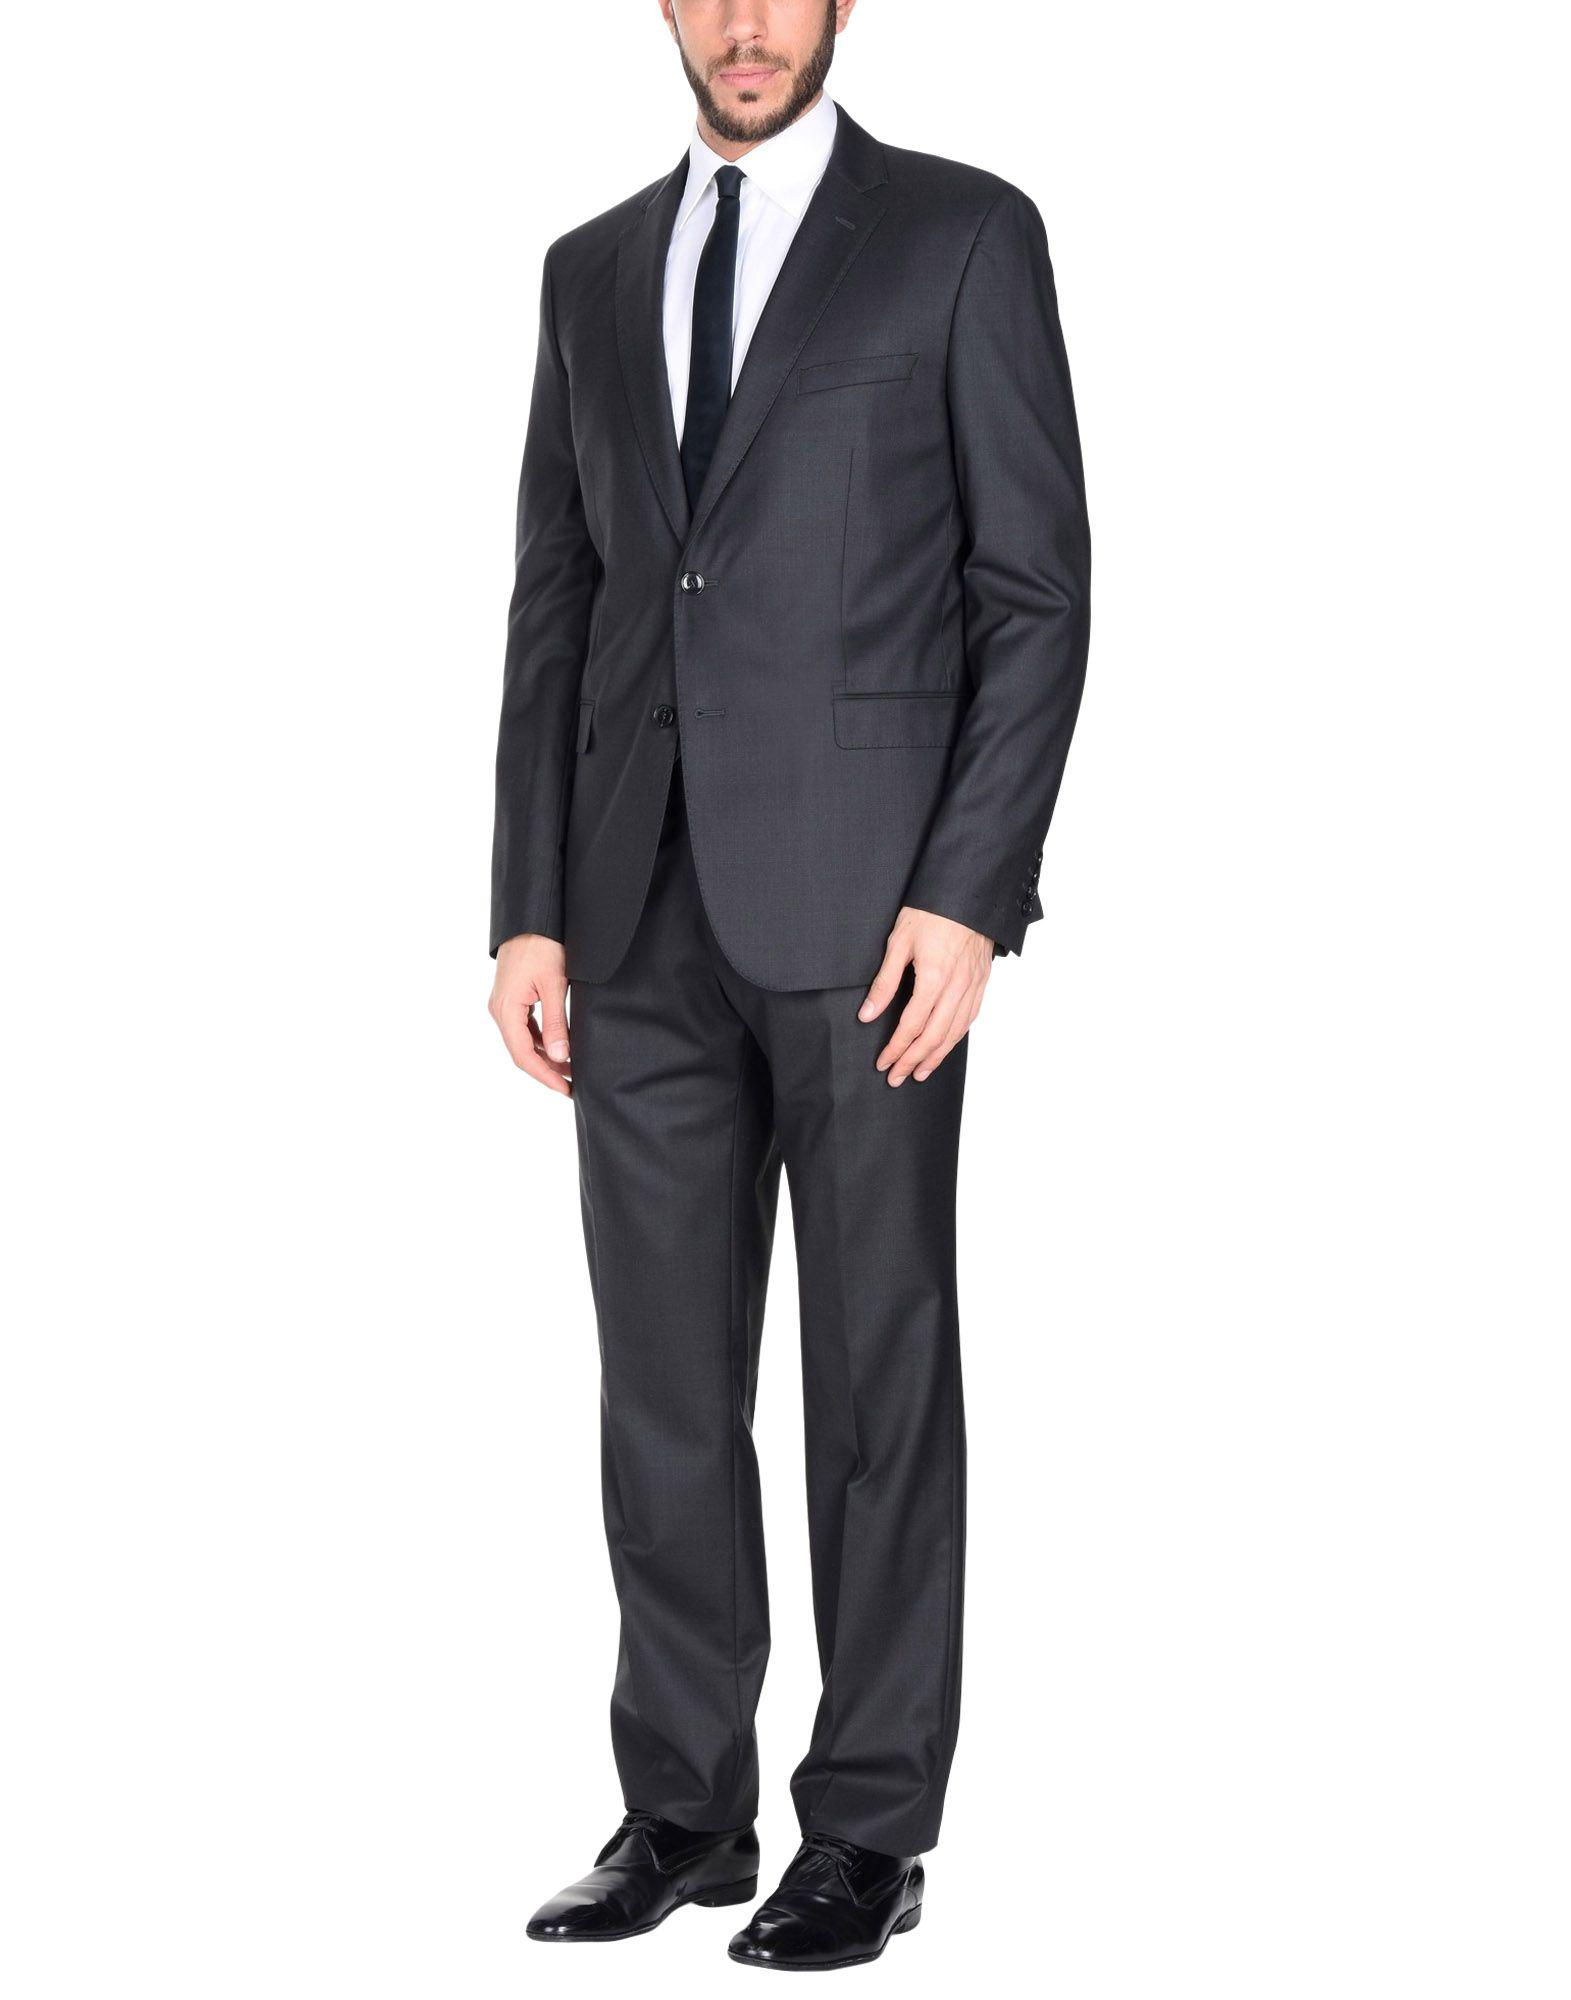 Paoloni Suits In Steel Grey